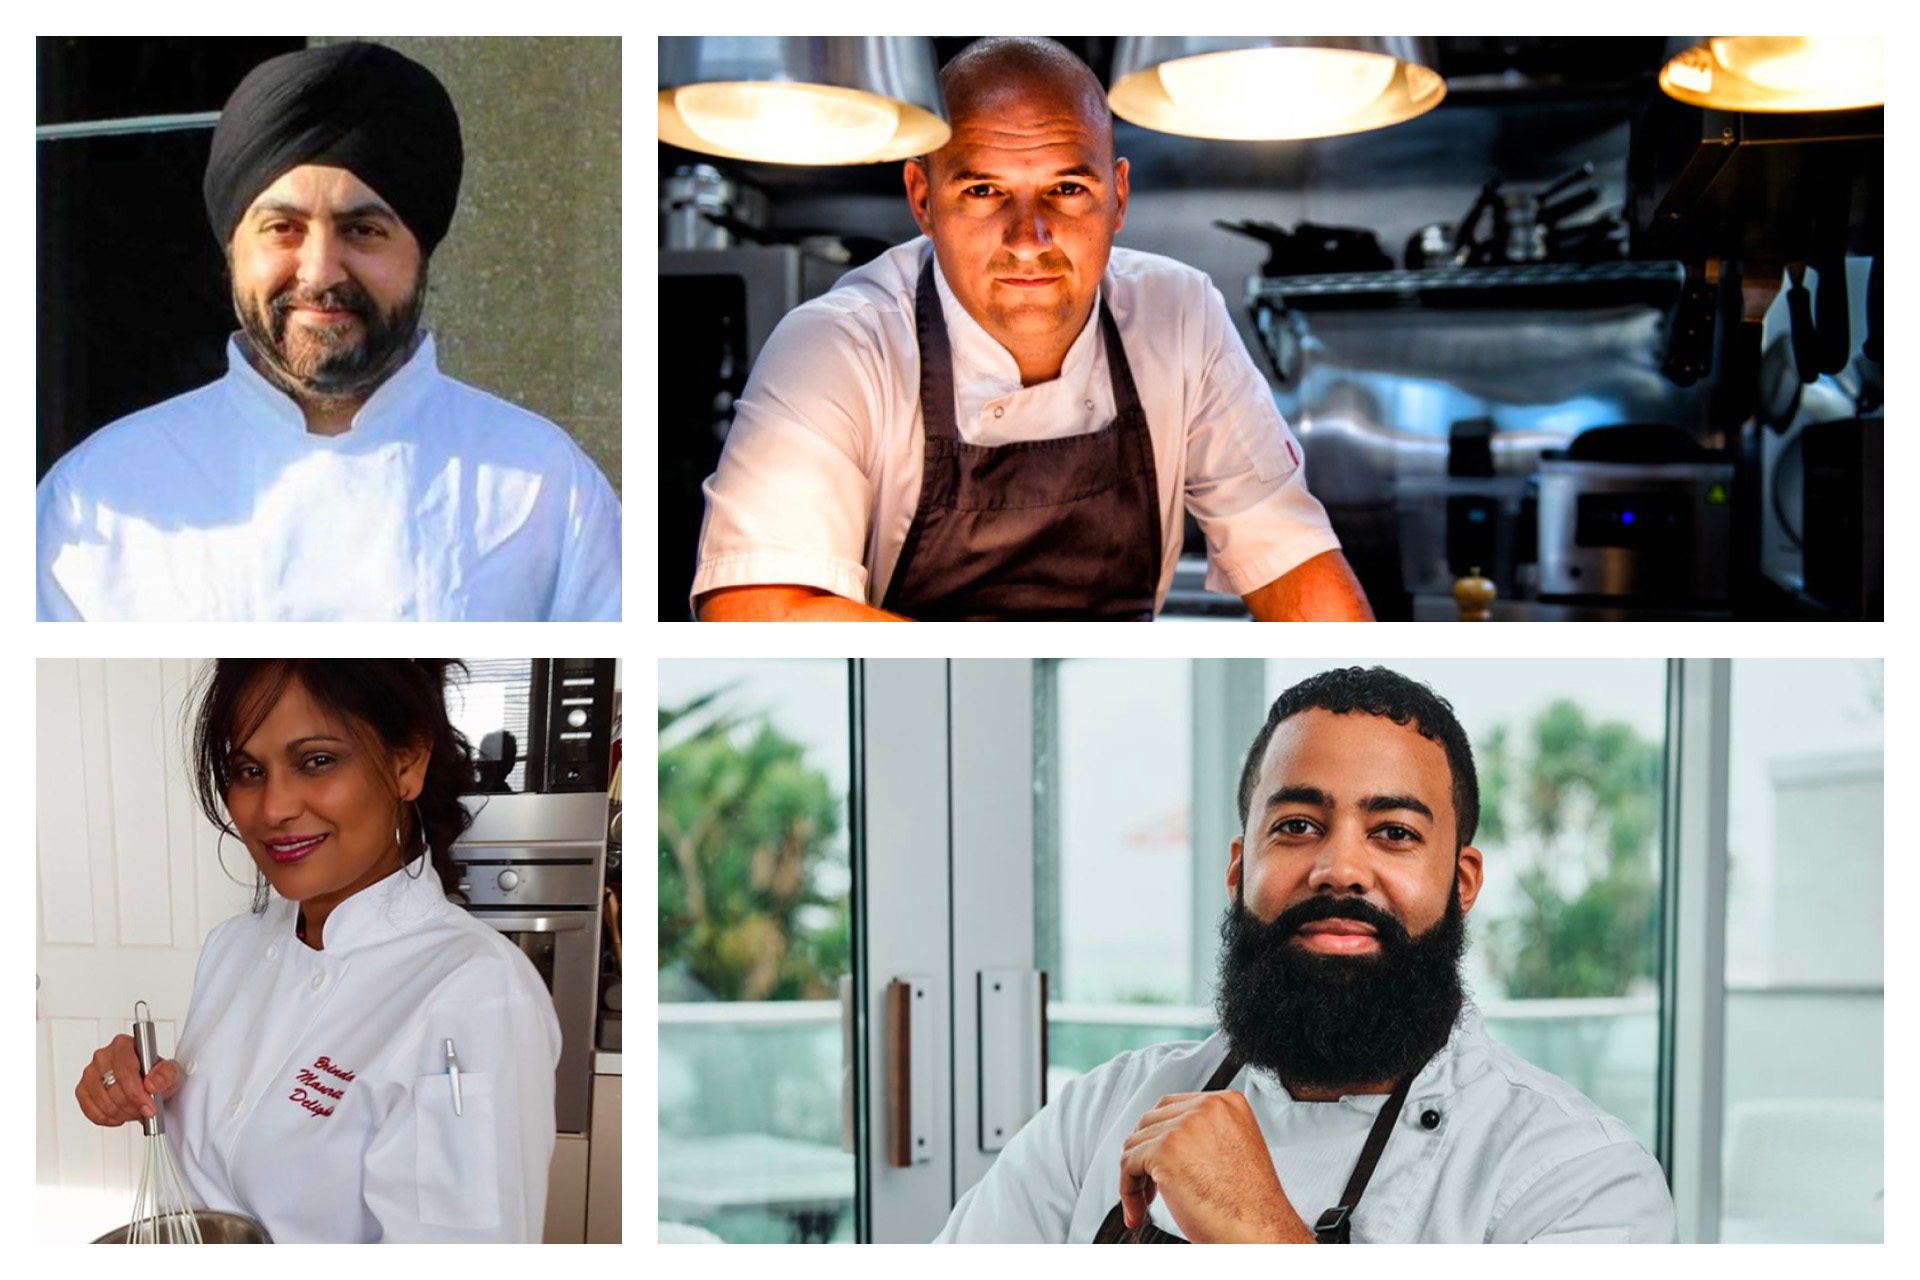 Four of the chefs who put on the masterclasses